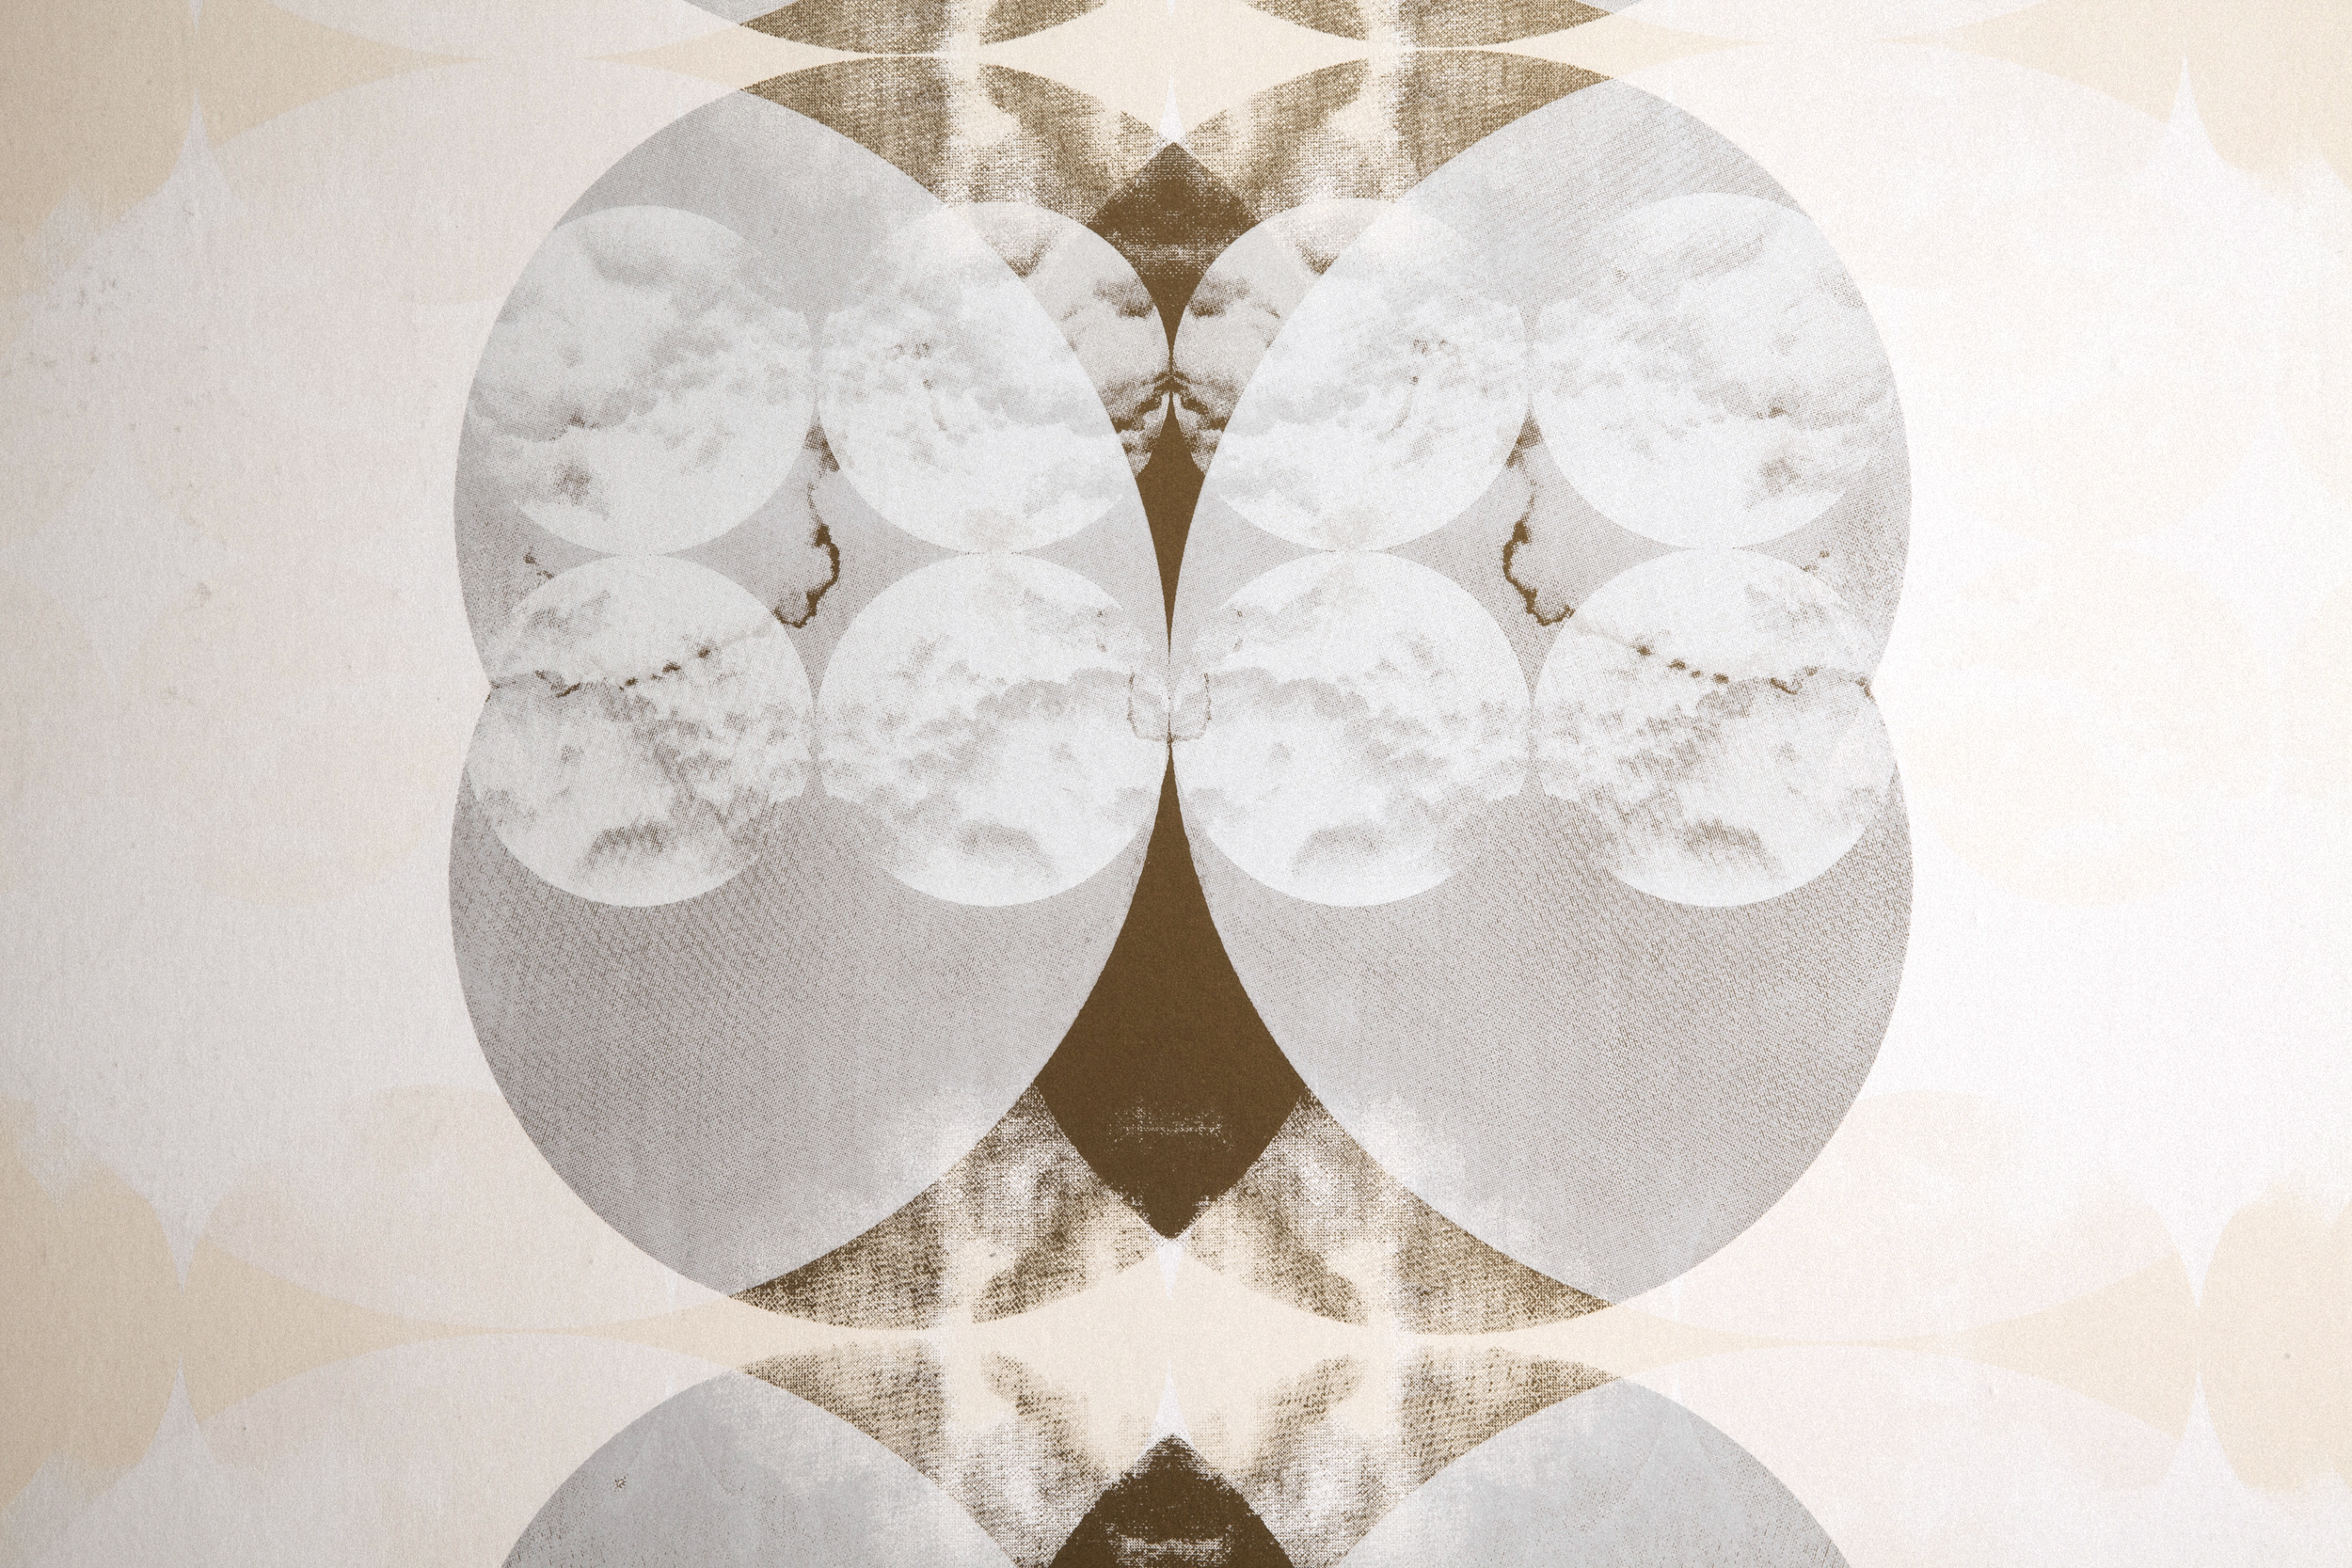 Nimbo in Mesospheric is a gold, cream, and white wallpaper.